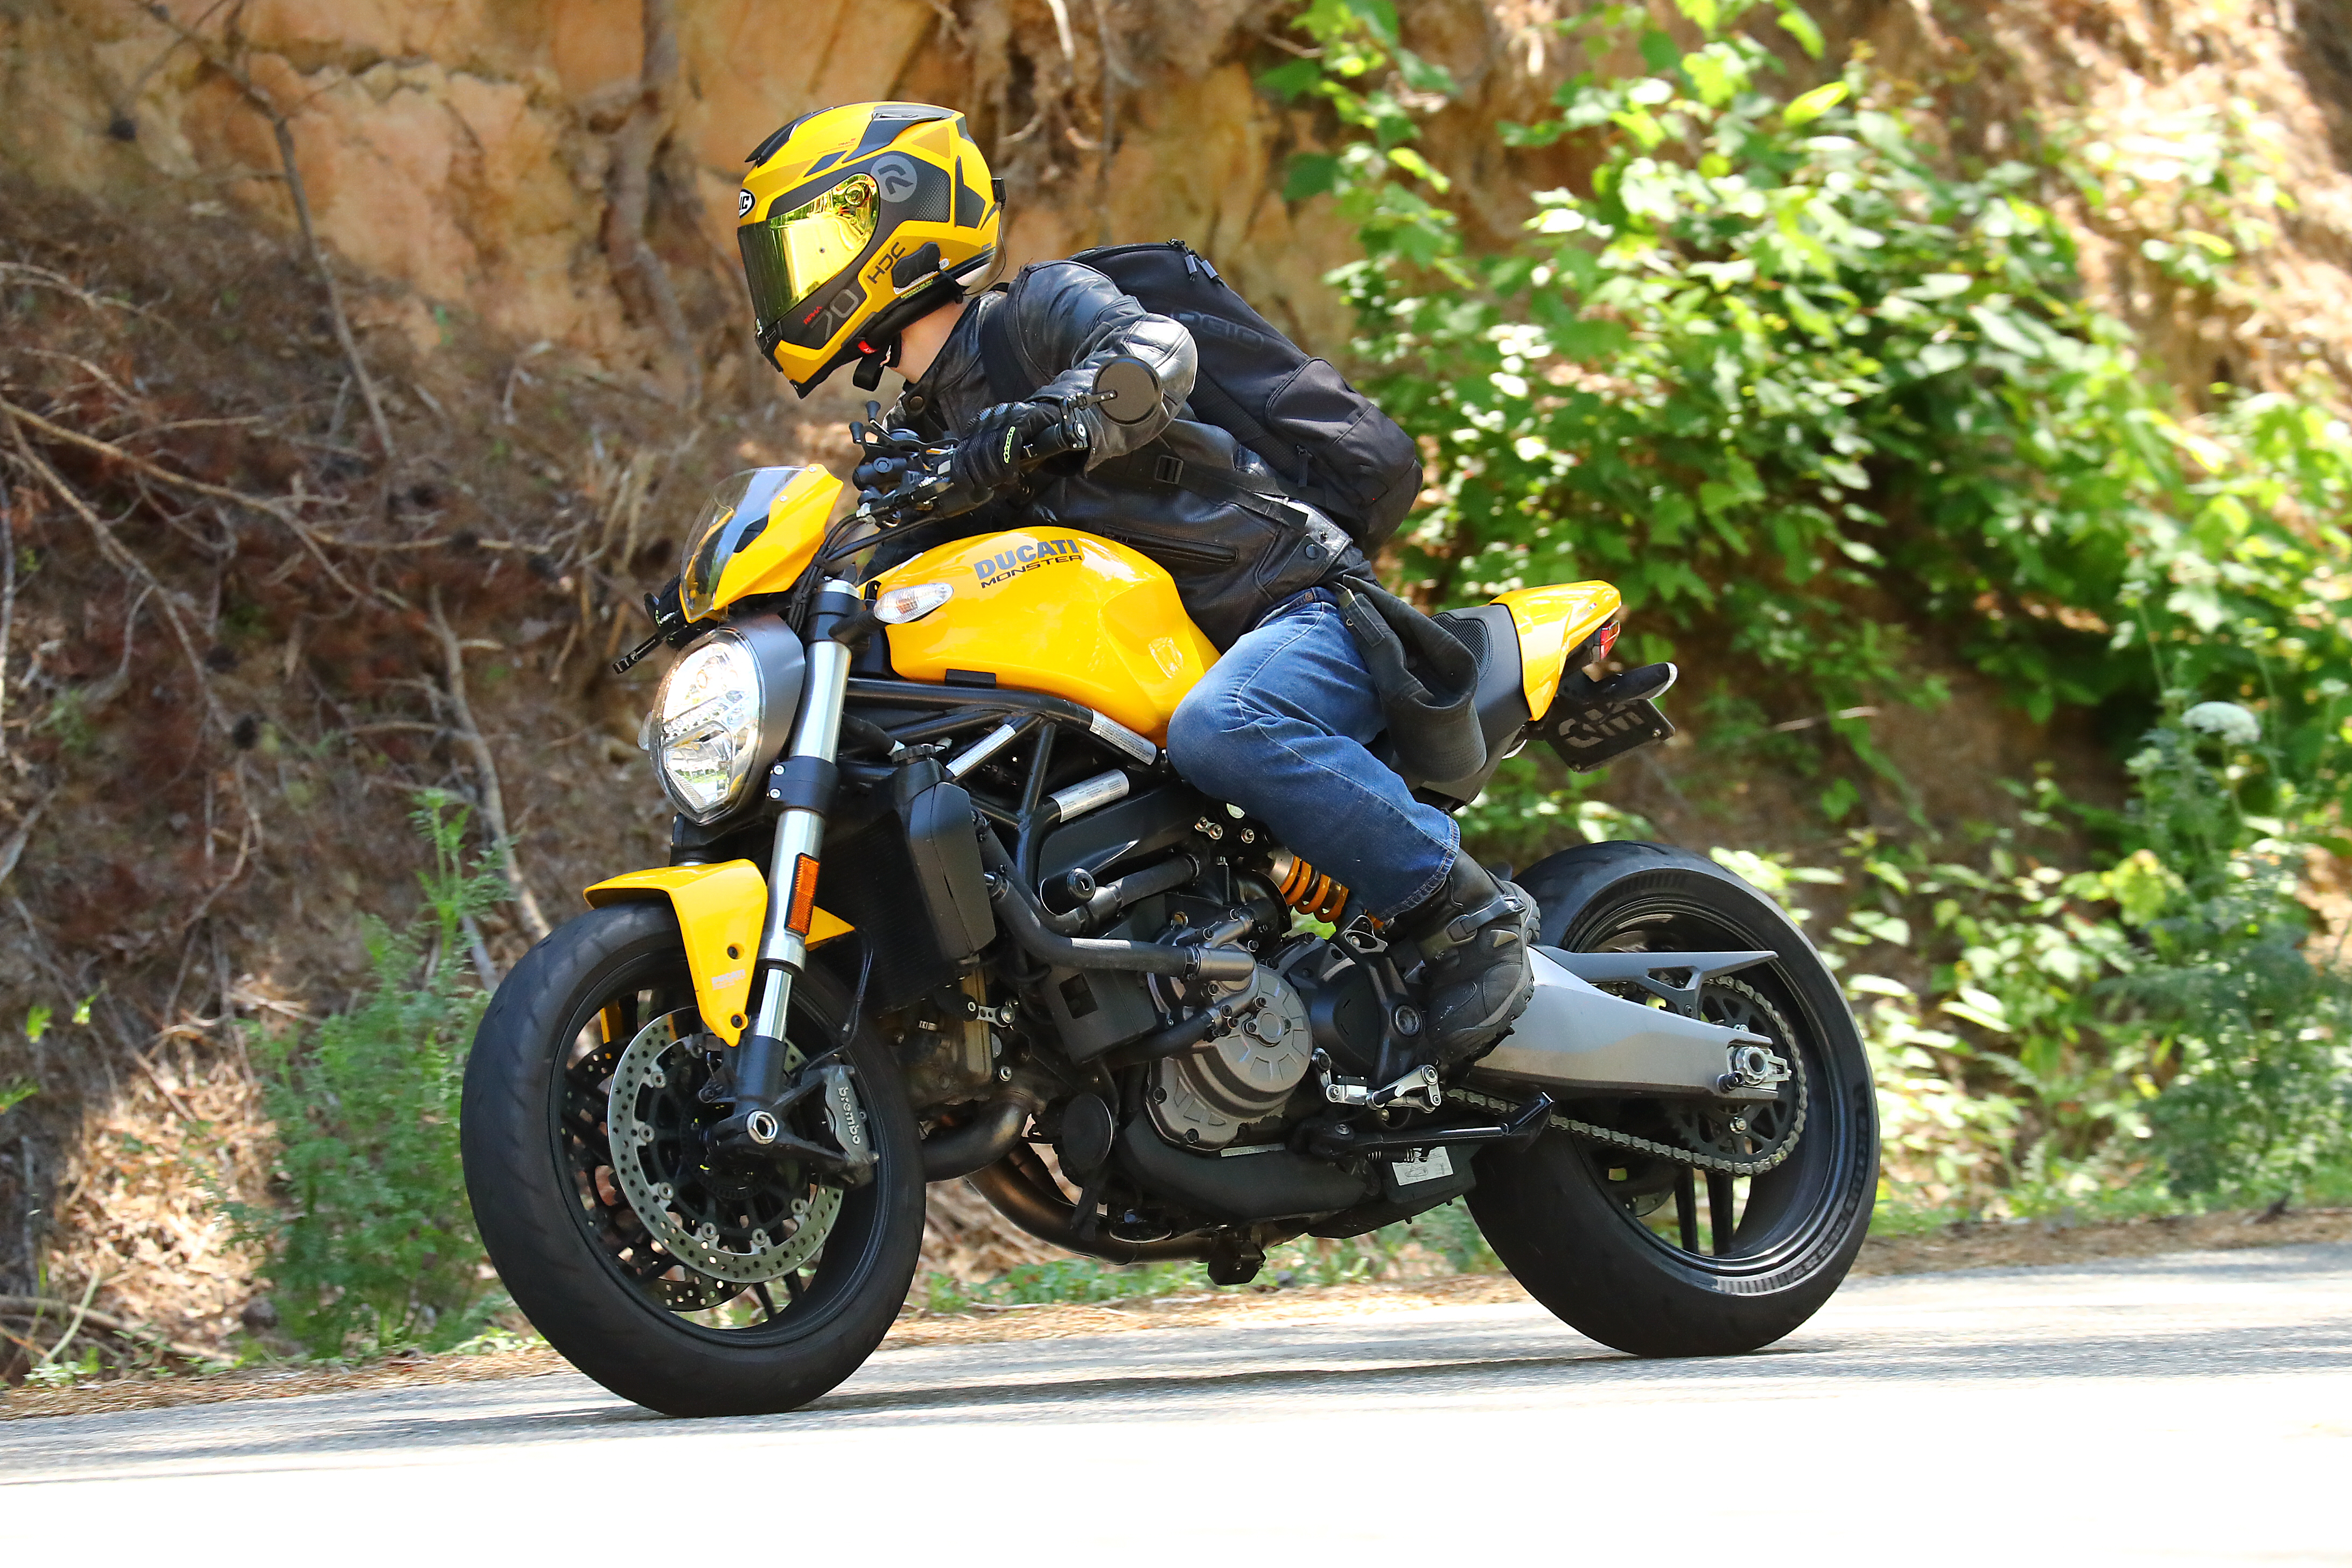 Yellow 2018 Ducati Monster 821 Motorcycle